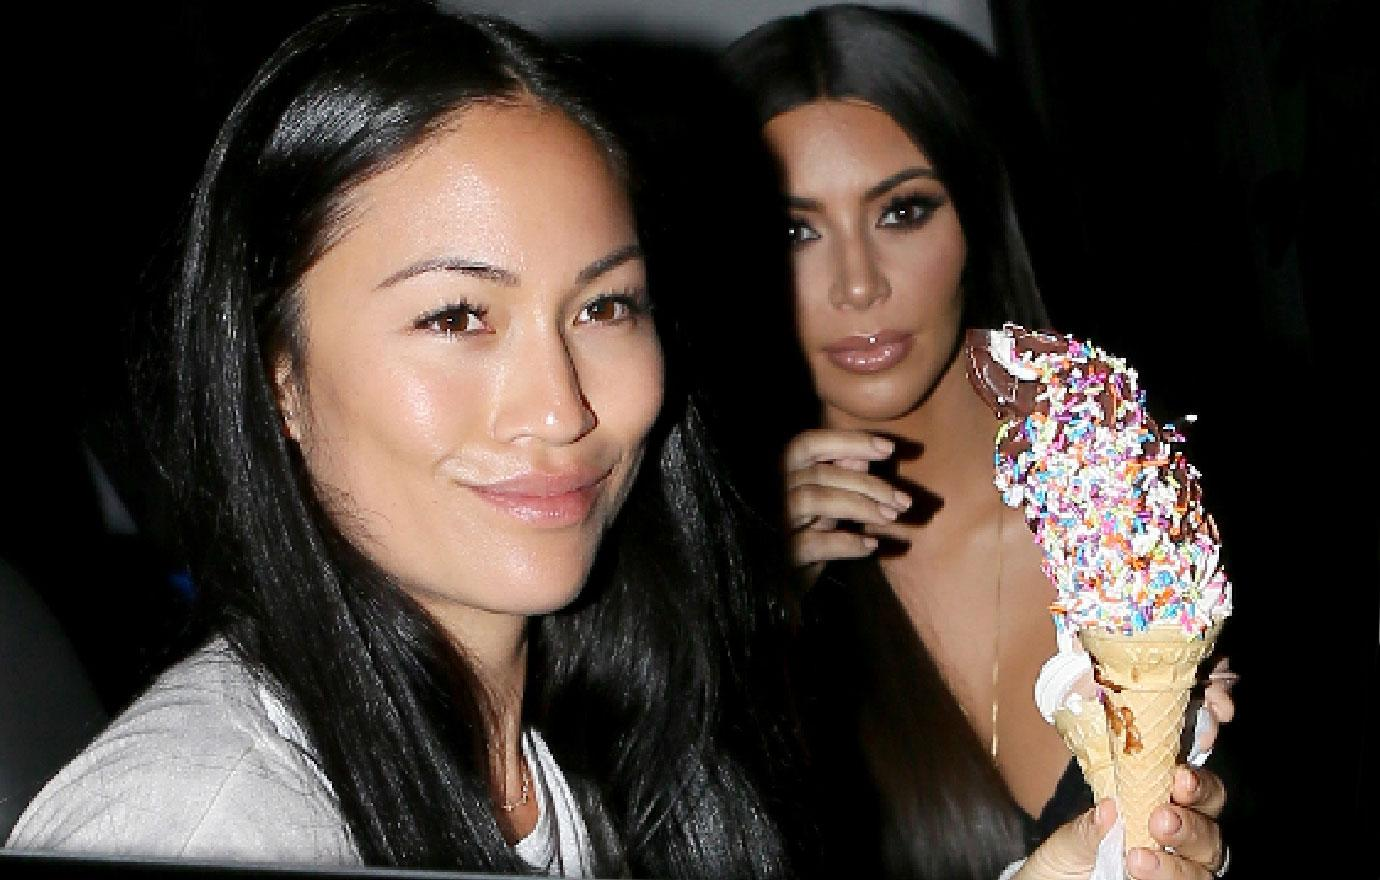 Kim Kardashian Gets Ice Cream Treat After Being A Make Up Model